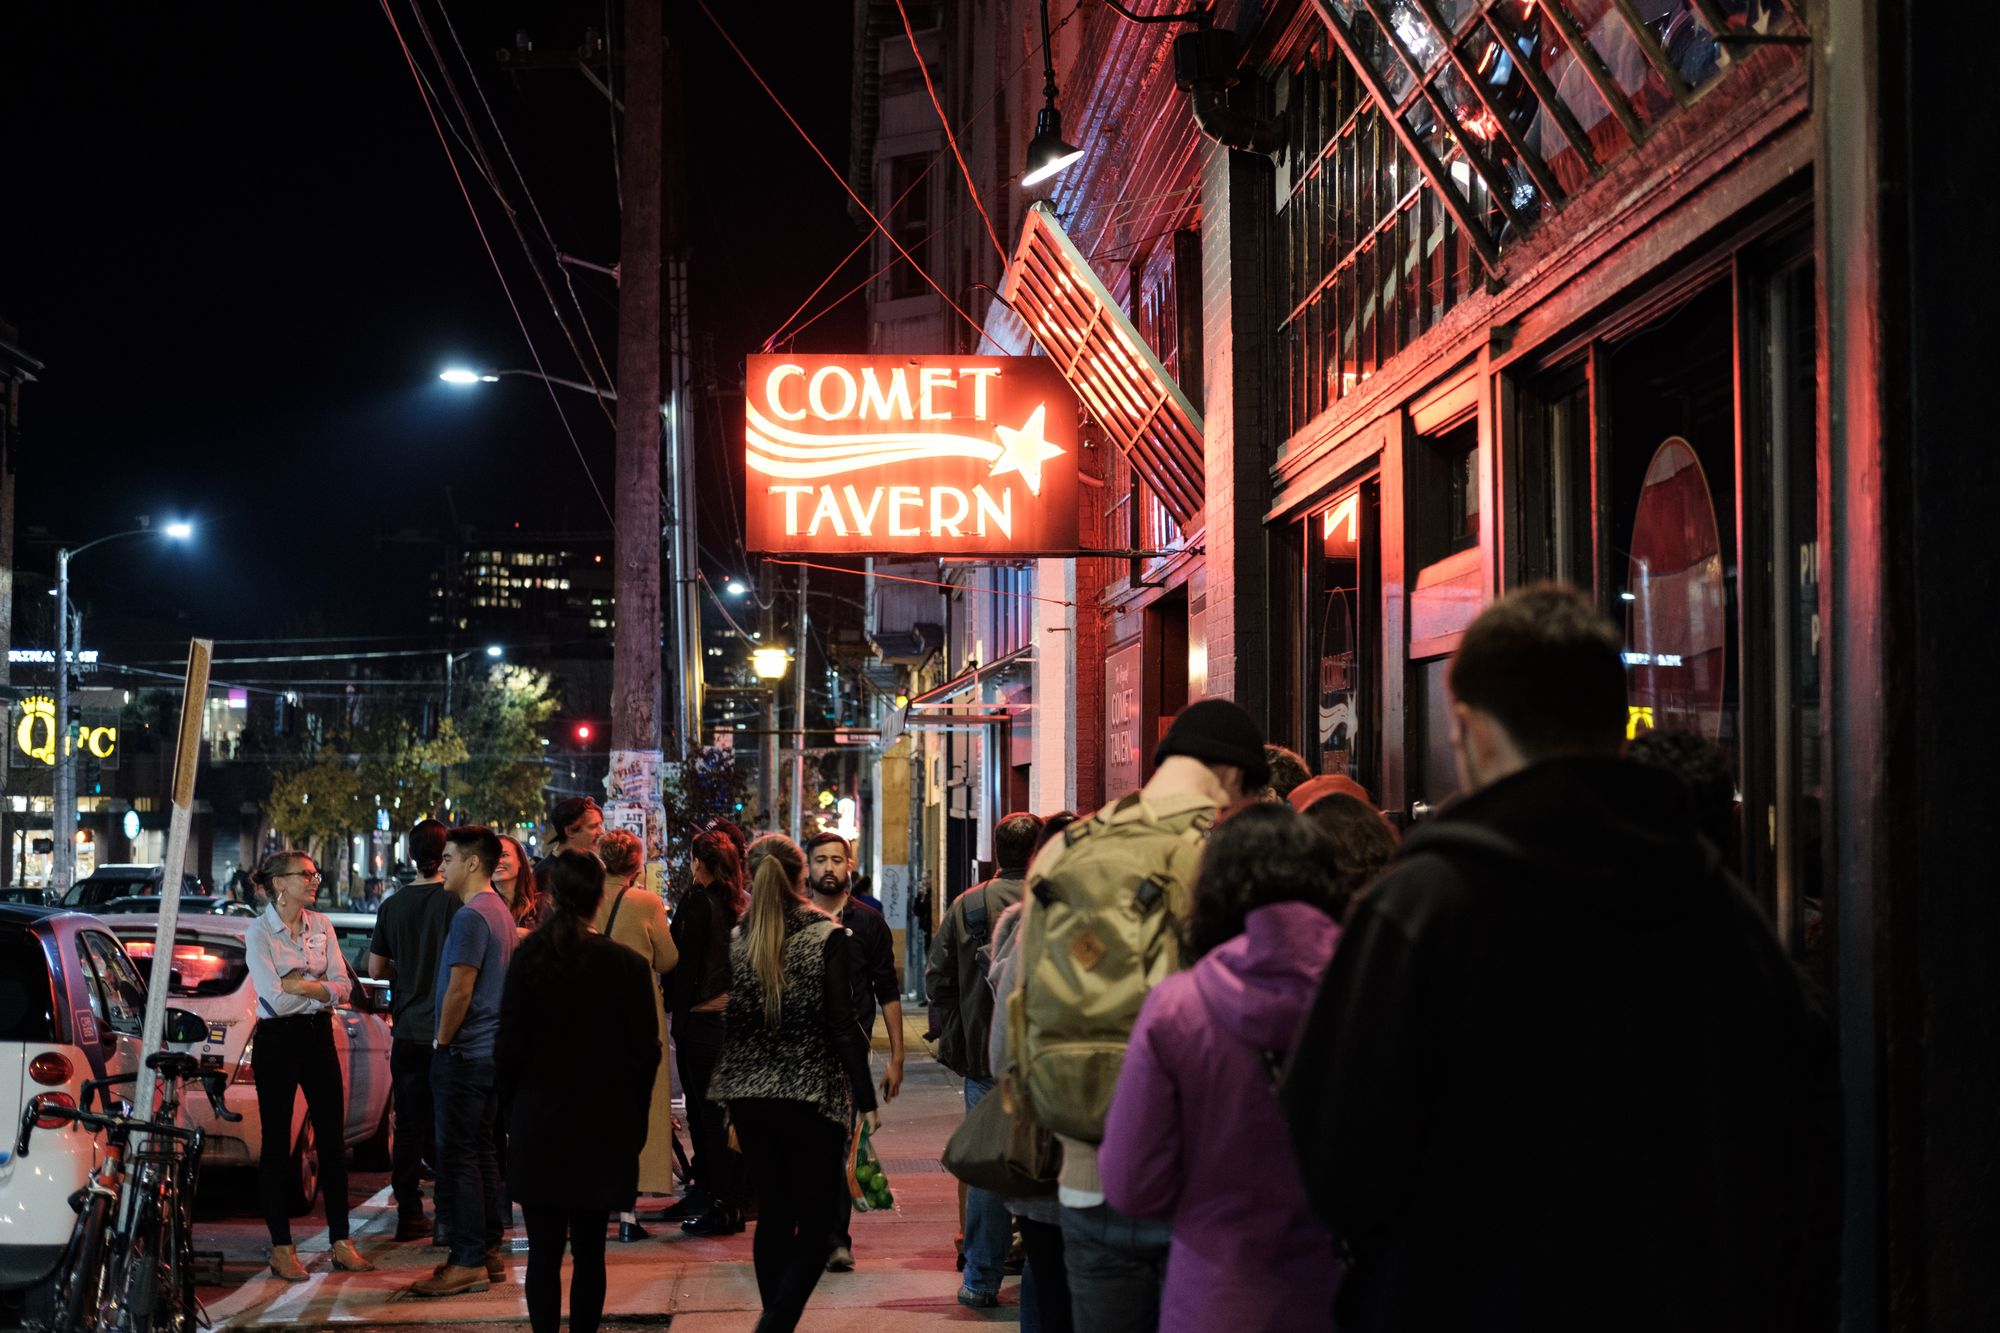 Comet Tavern Seattle